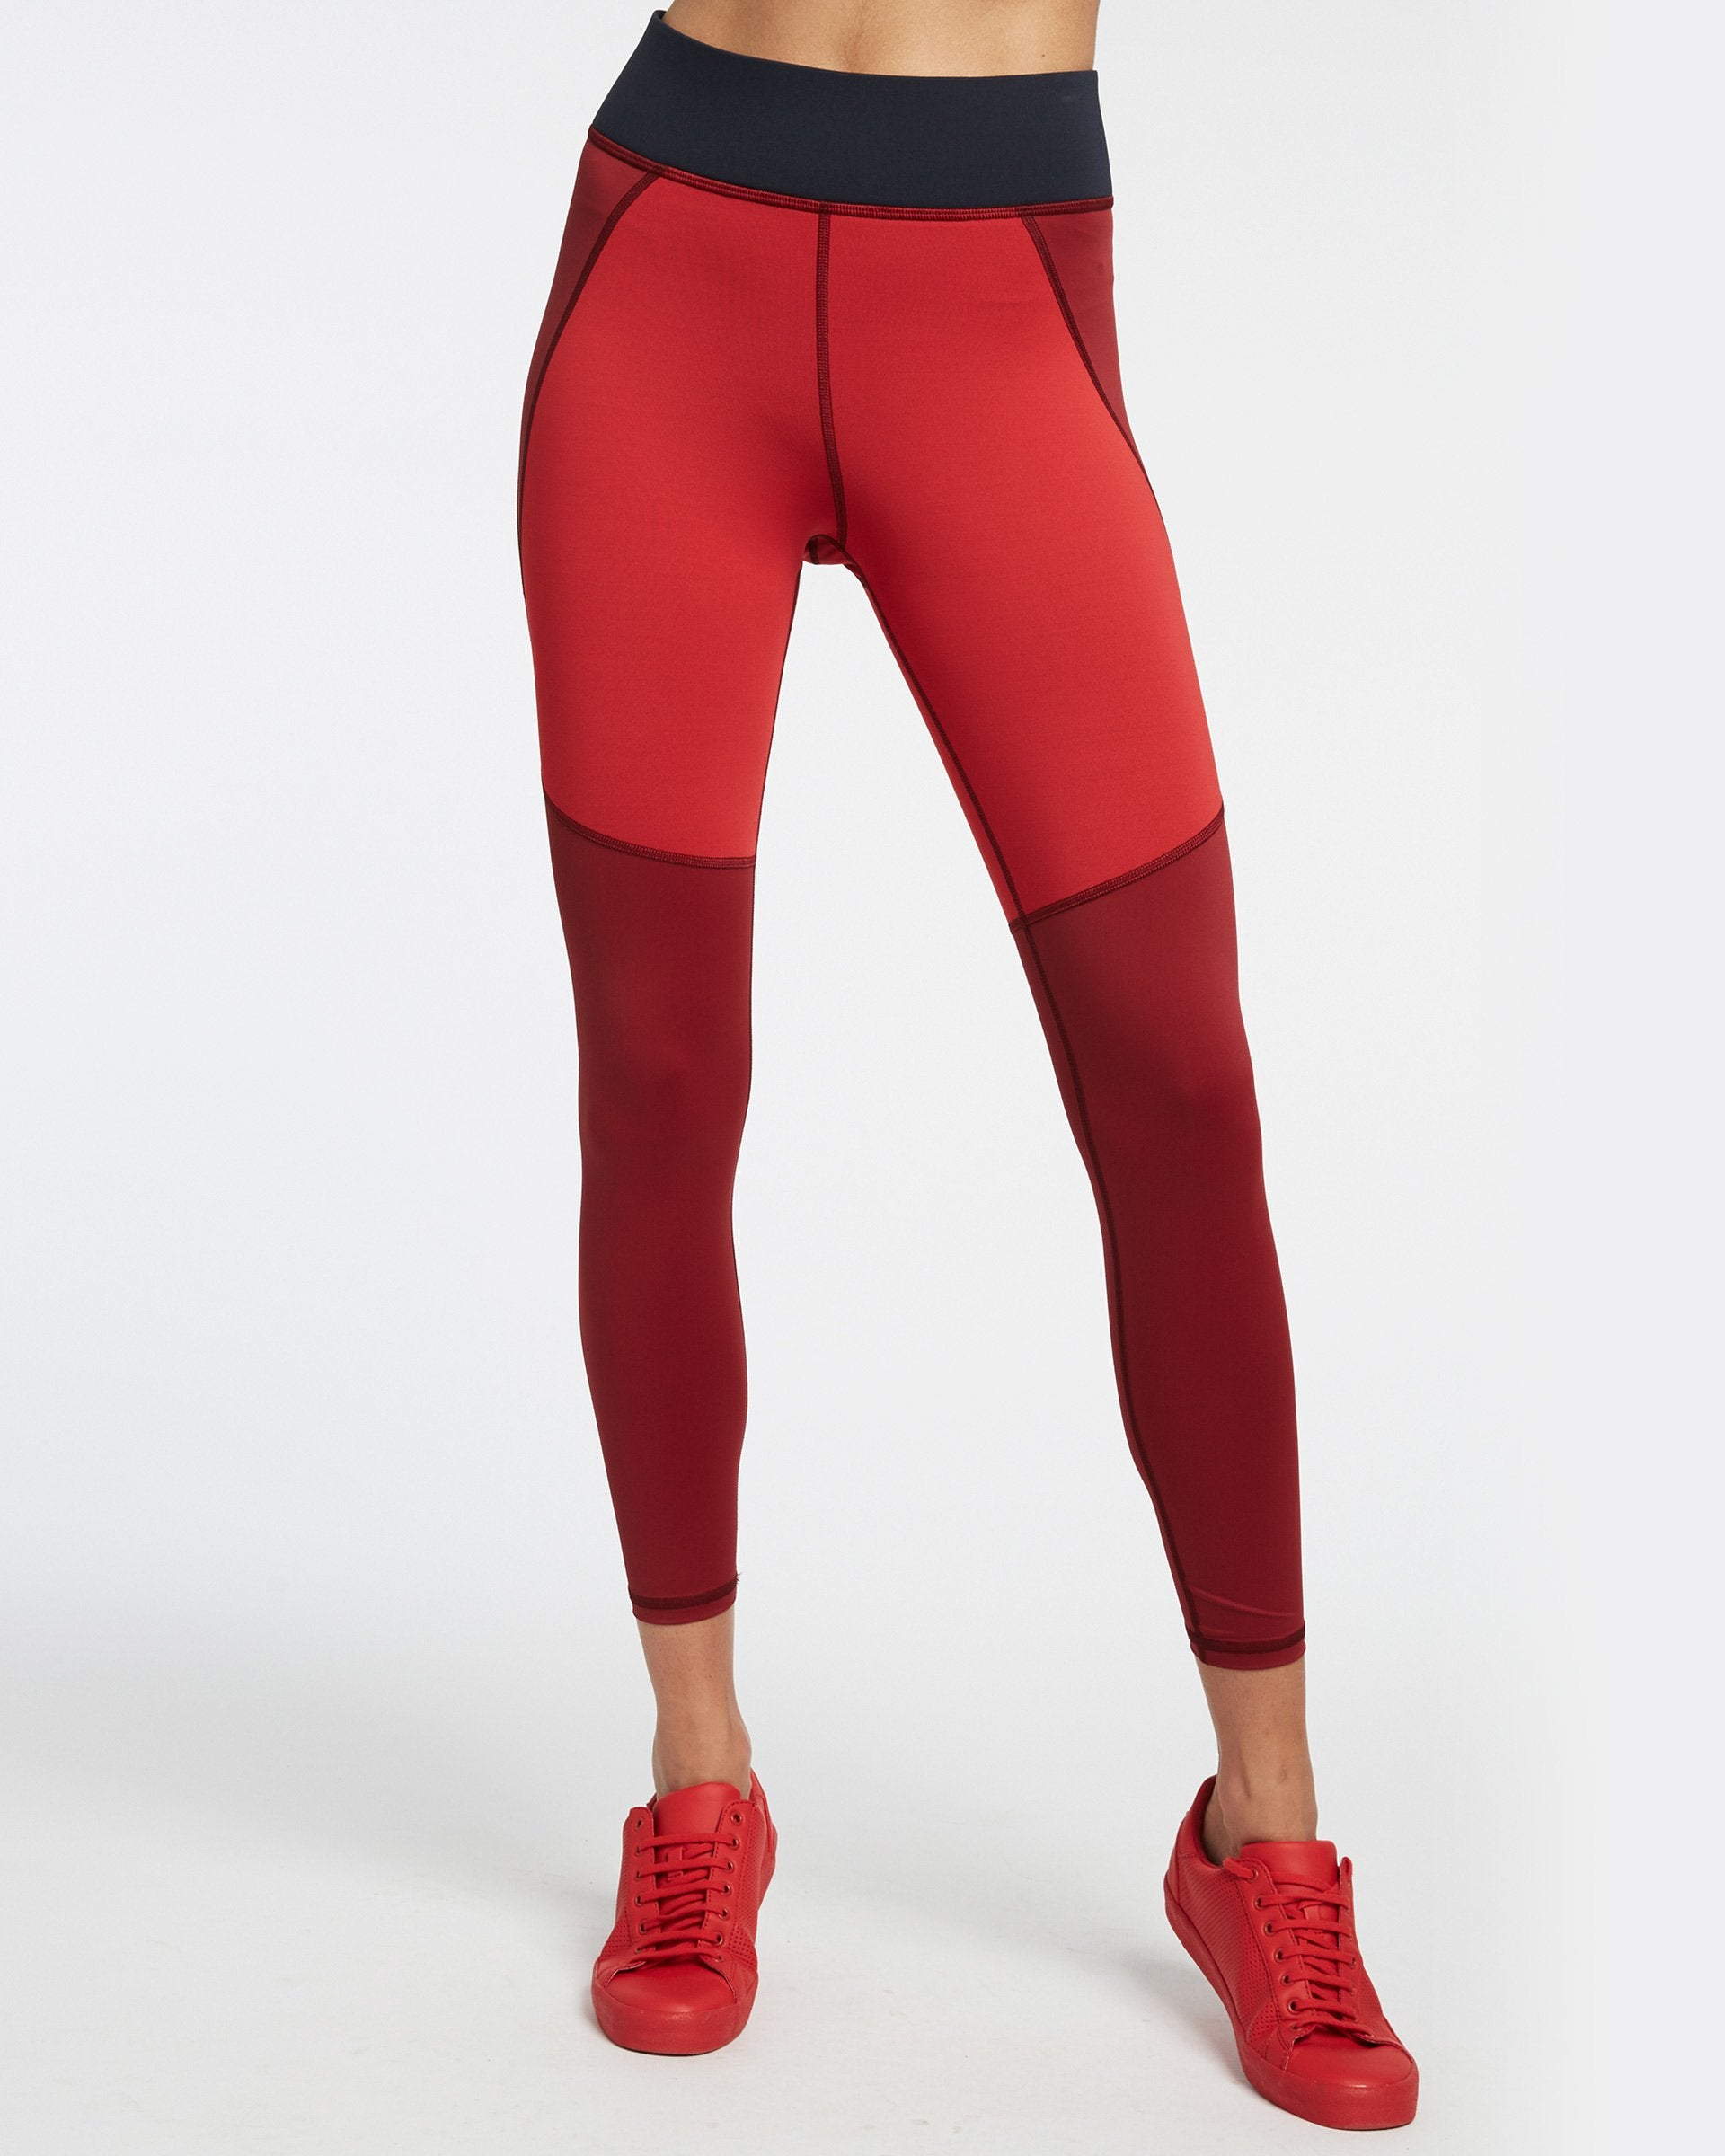 tidal-legging-fire-red-earth-red-deep-sea-navy